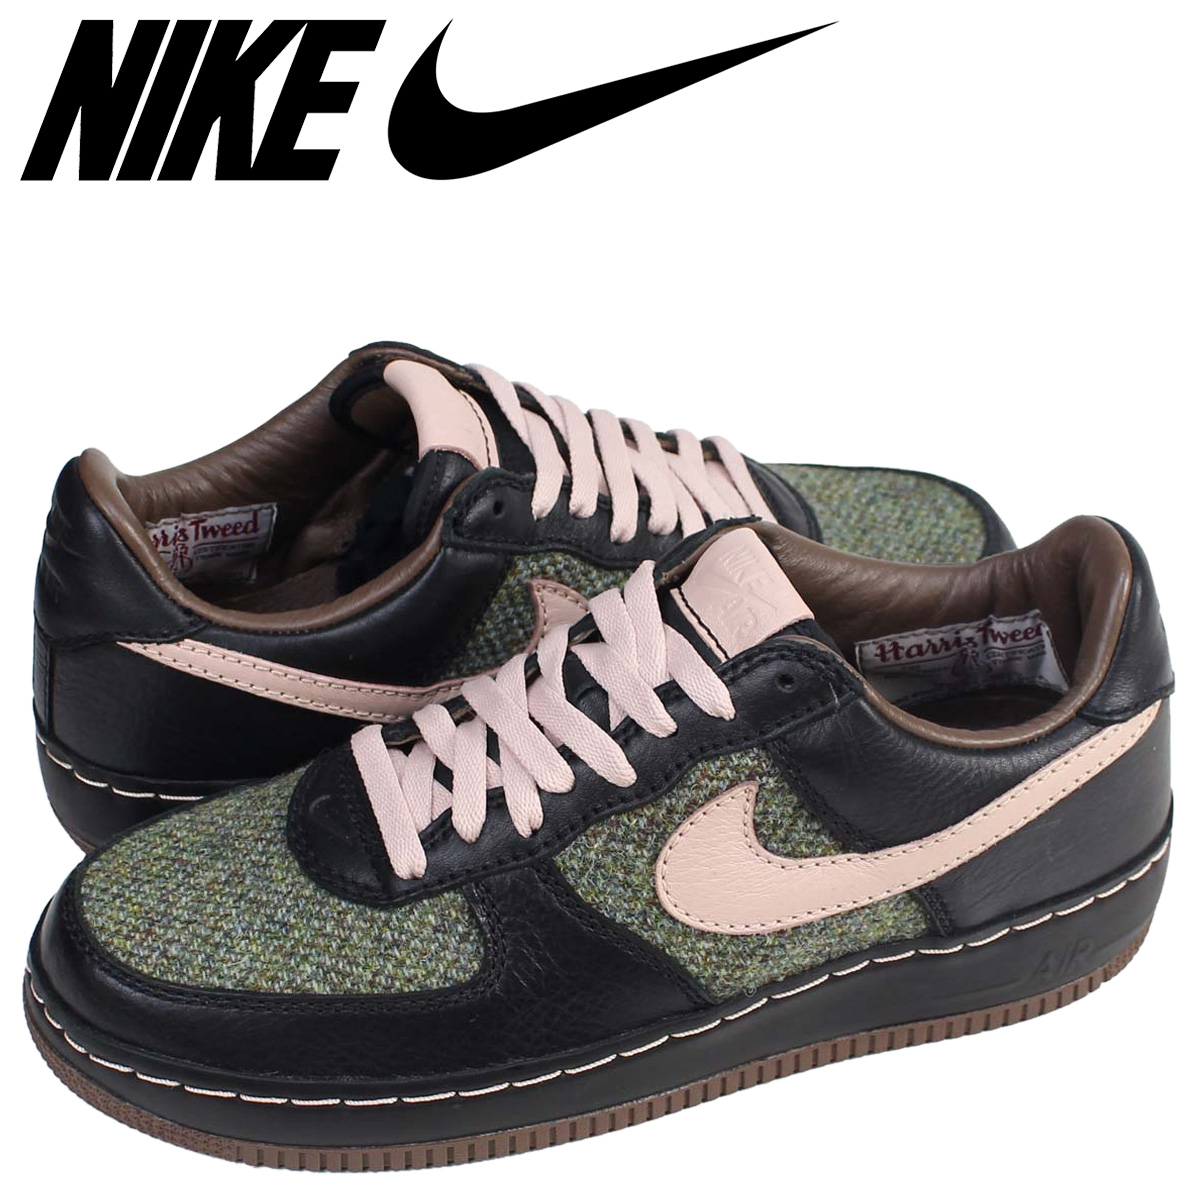 exquisite design official site reliable quality Nike NIKE air force 1 sneakers AIR FORCE 1 LOW INSIDEOUT TWEED 312,268-061  low men shoes black